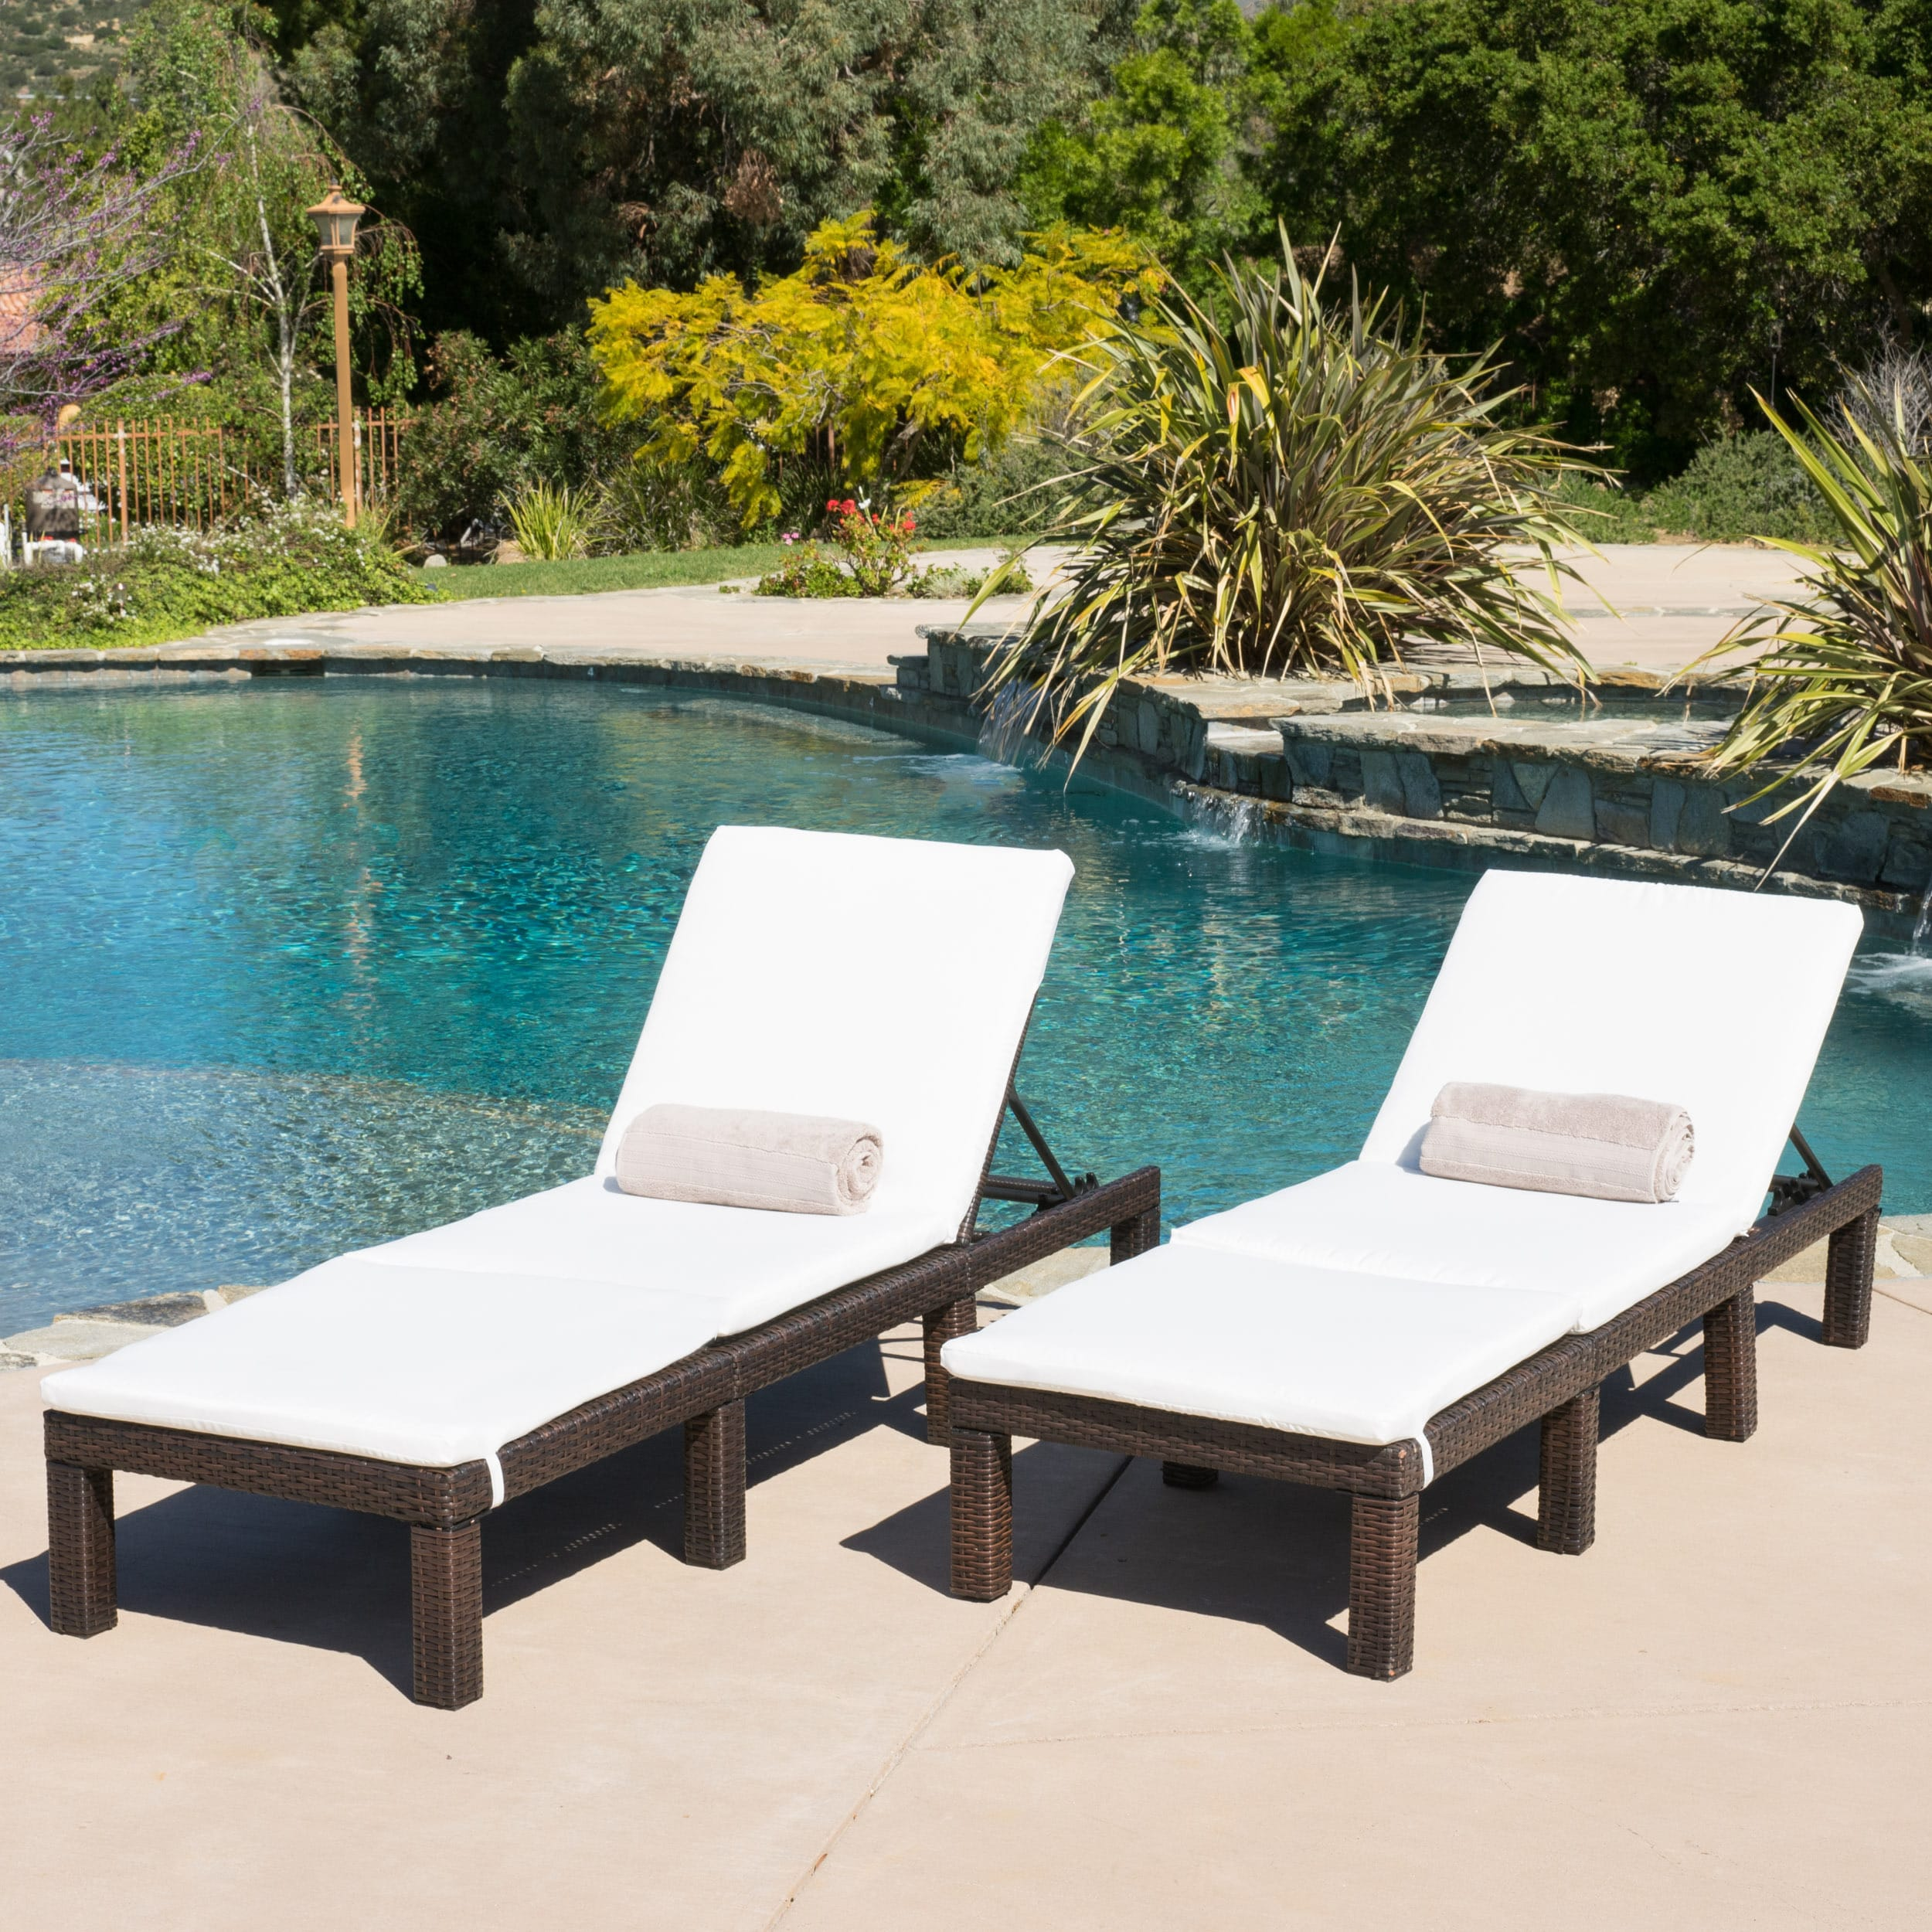 Shop Black Friday Deals On Jamaica Outdoor Chaise Lounge With Cushion Set Of 2 By Christopher Knight Home On Sale Overstock 10094355